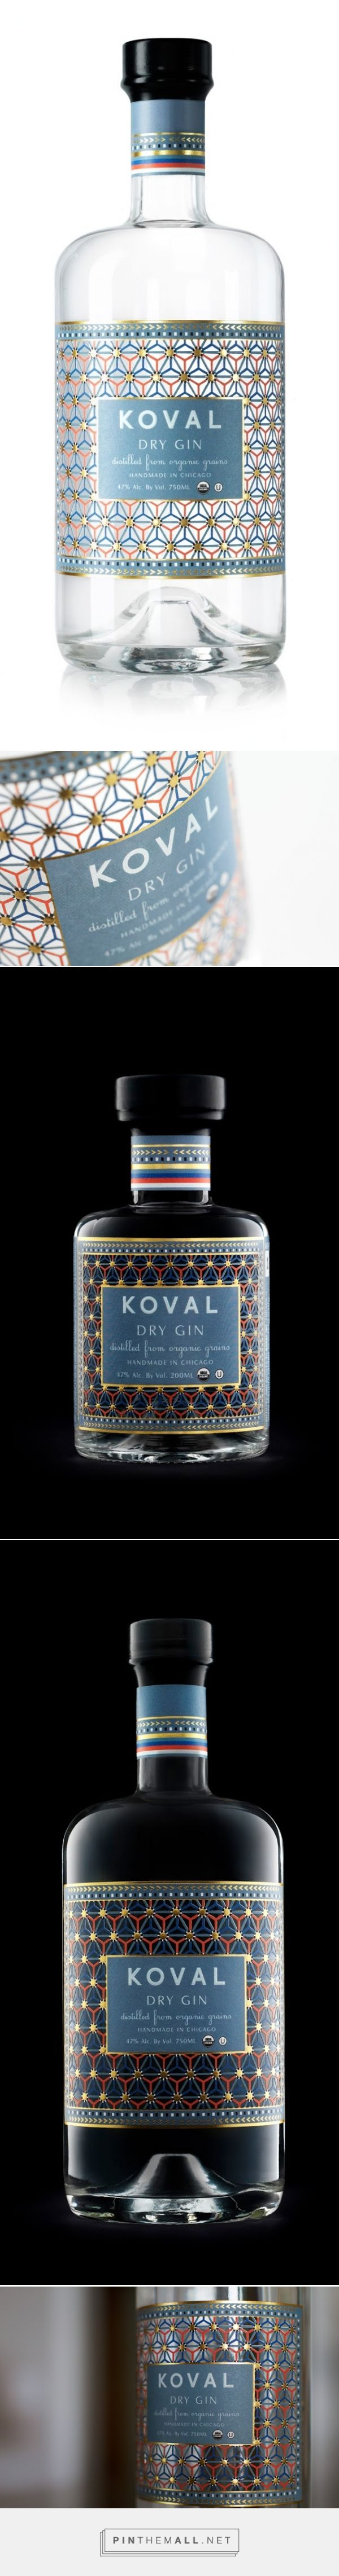 KOVAL Dry #Gin #packaging by Dando Projects - http://www.packagingoftheworld.com/2014/12/koval-dry-gin.html